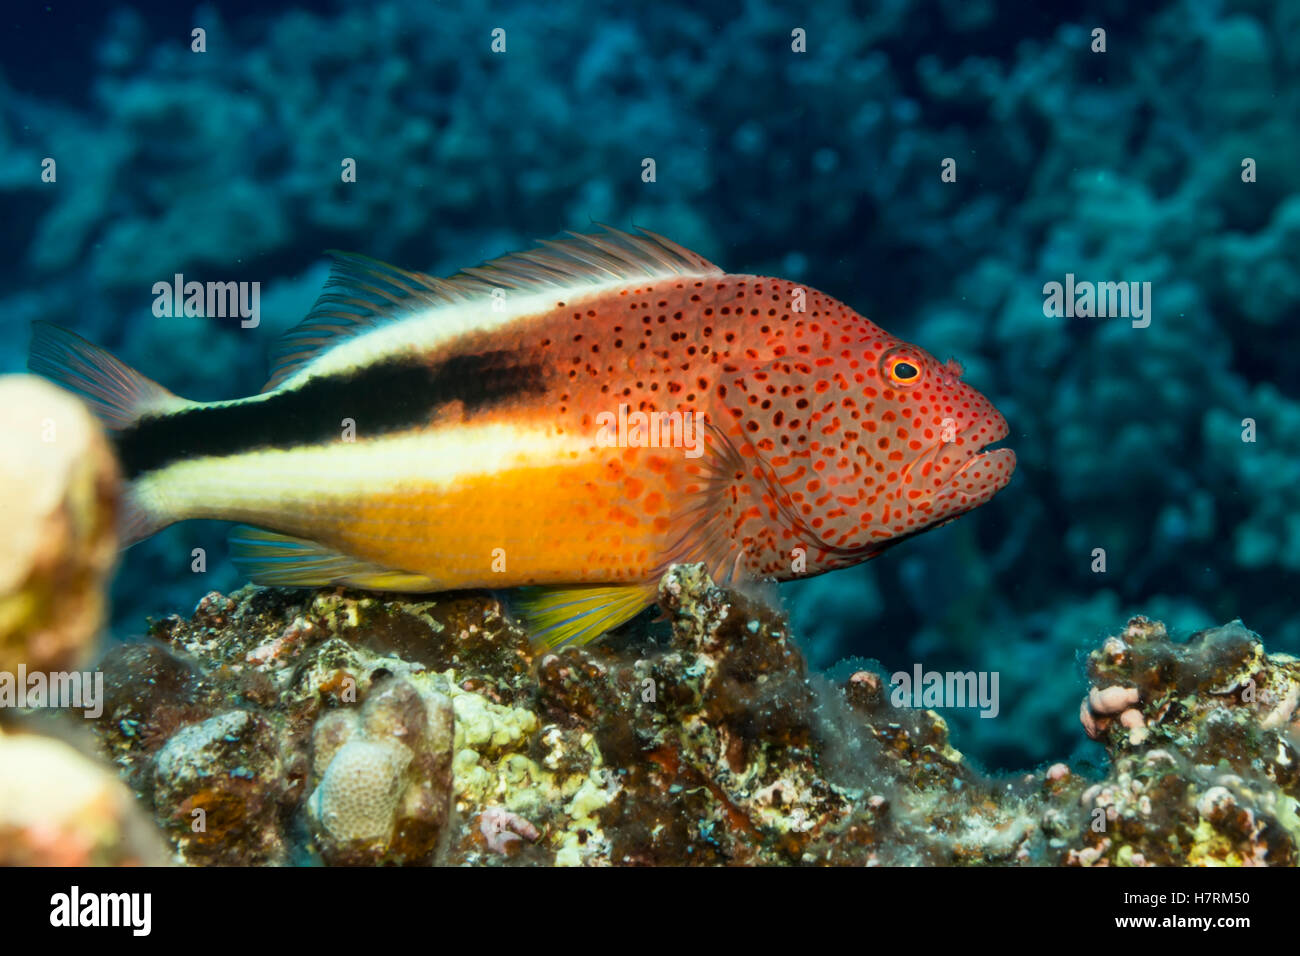 Freckled Hawkfish (Paracirrhites forsteri) resting on algae-covered dead coral was photographed while scuba diving - Stock Image